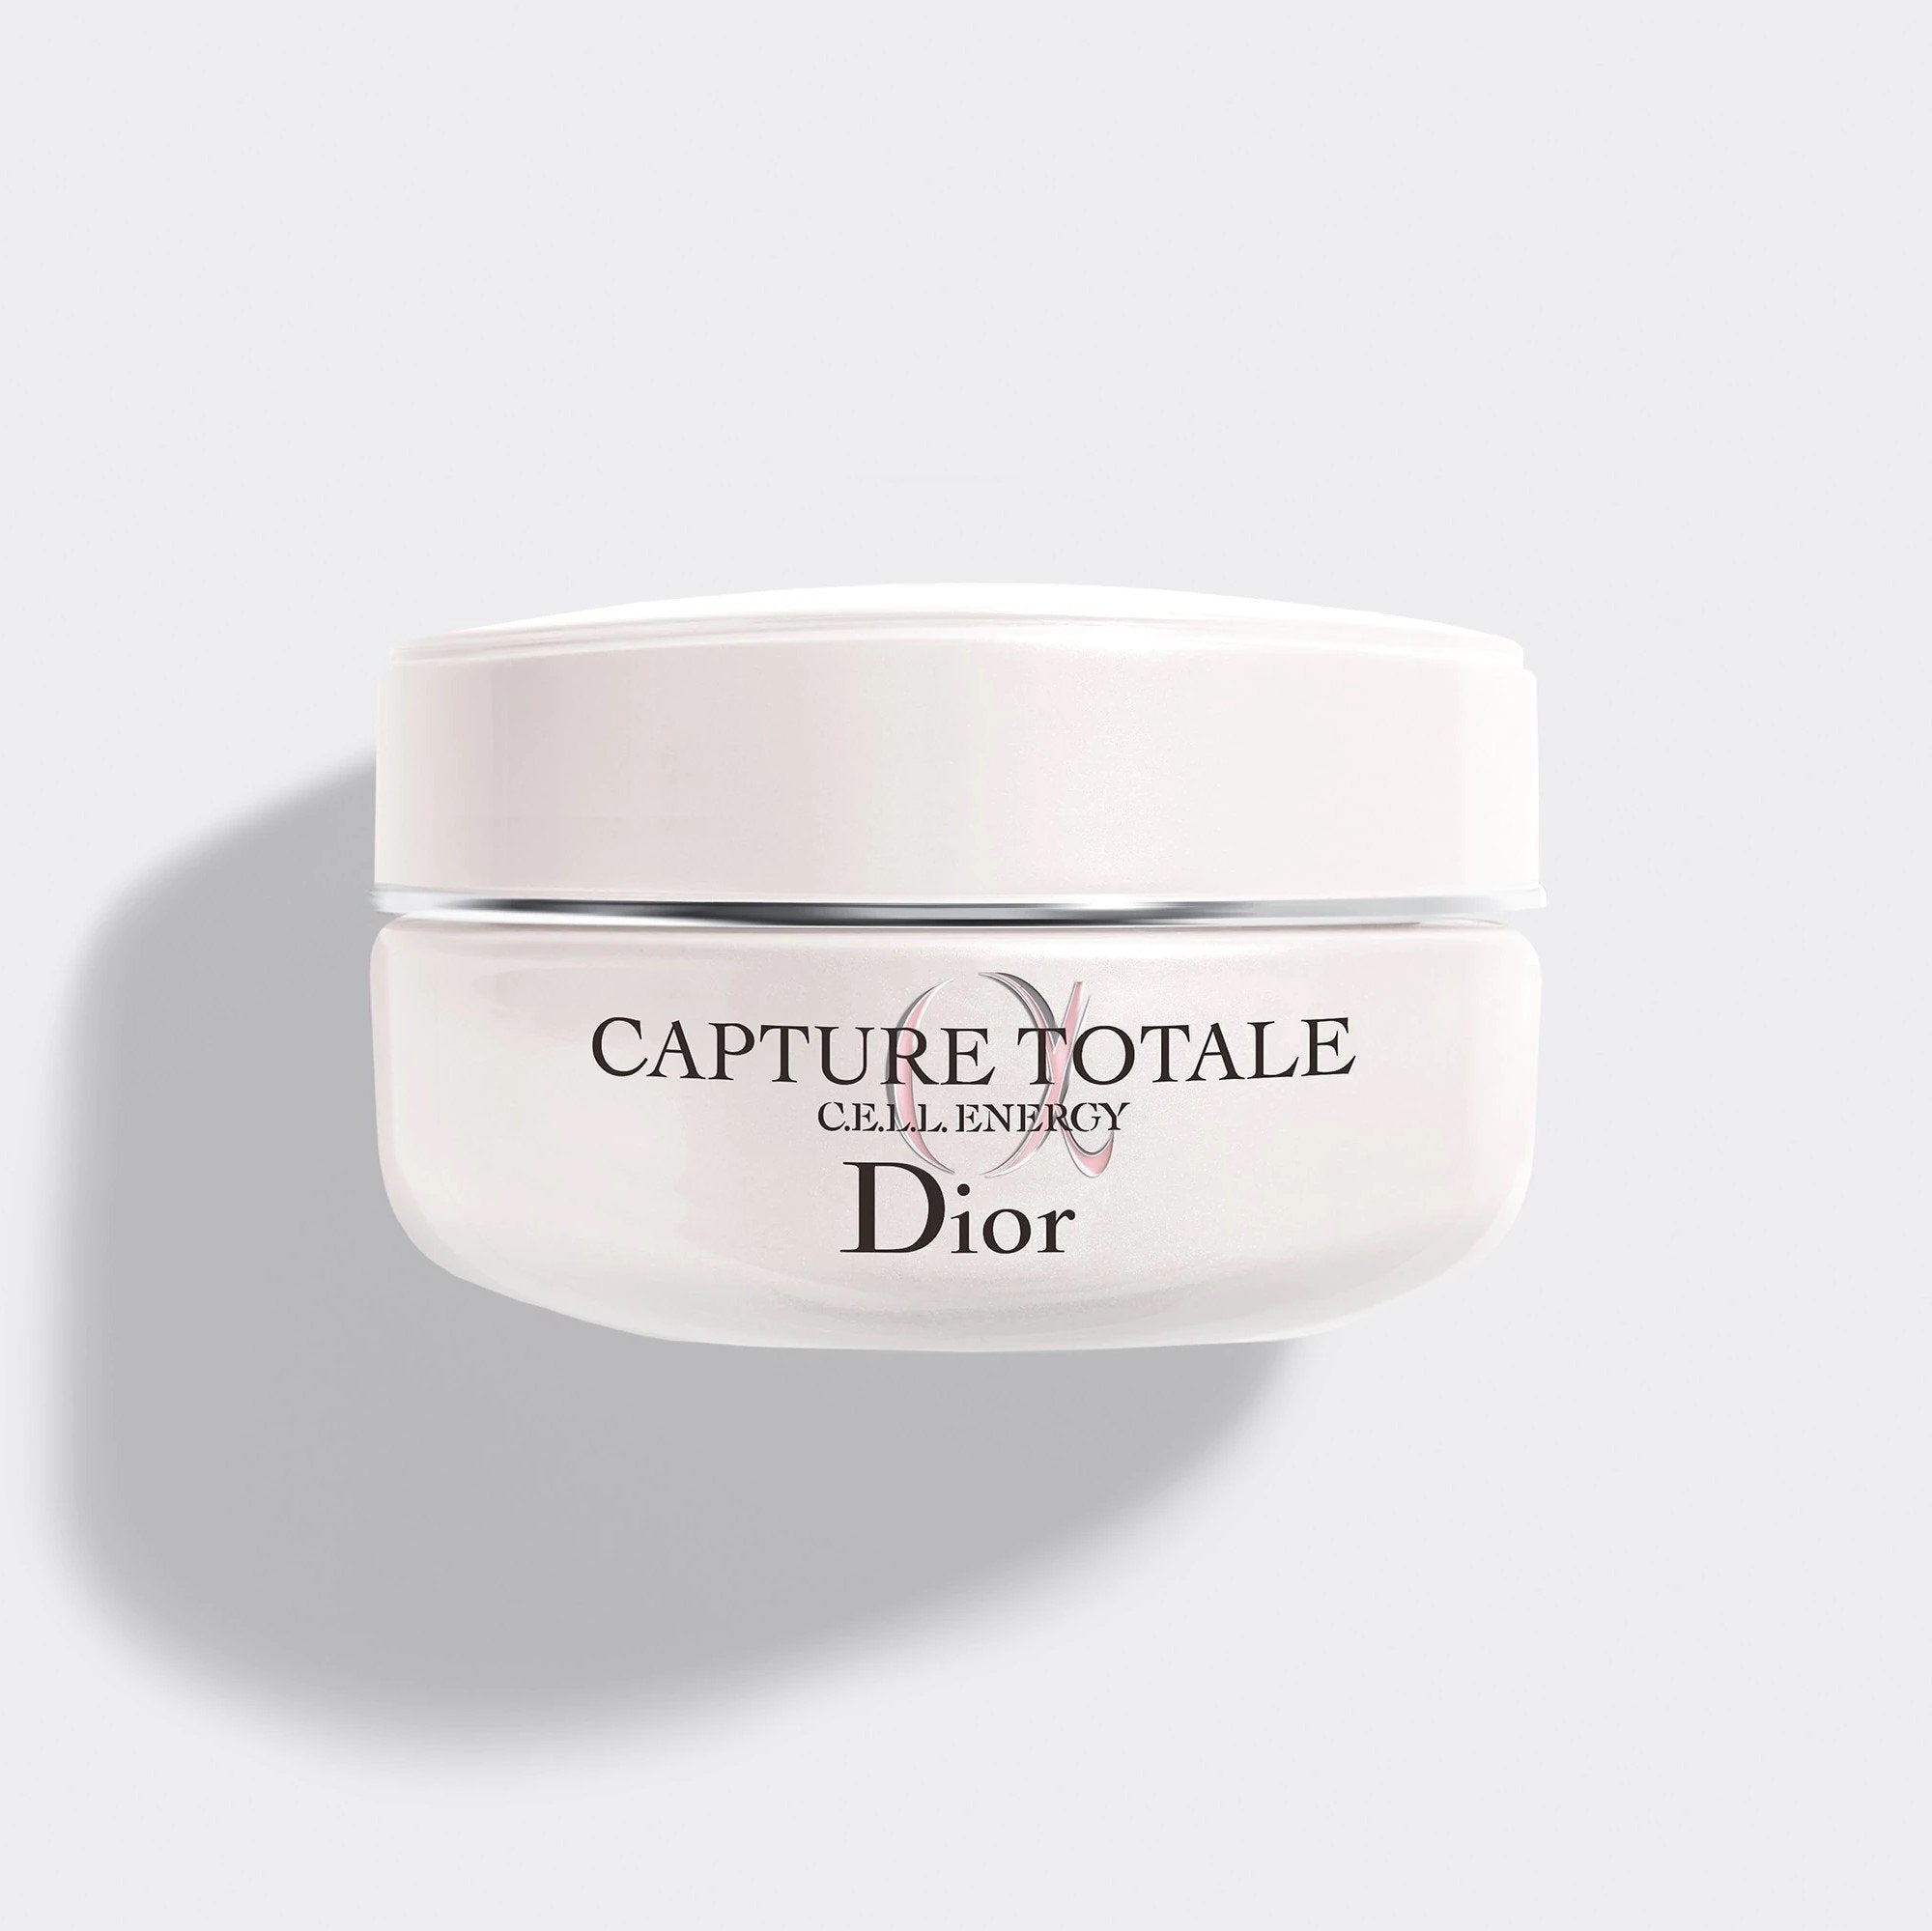 CAPTURE TOTALE C.E.L.L. ENERGY* ~ Firming & wrinkle-correcting eye cream